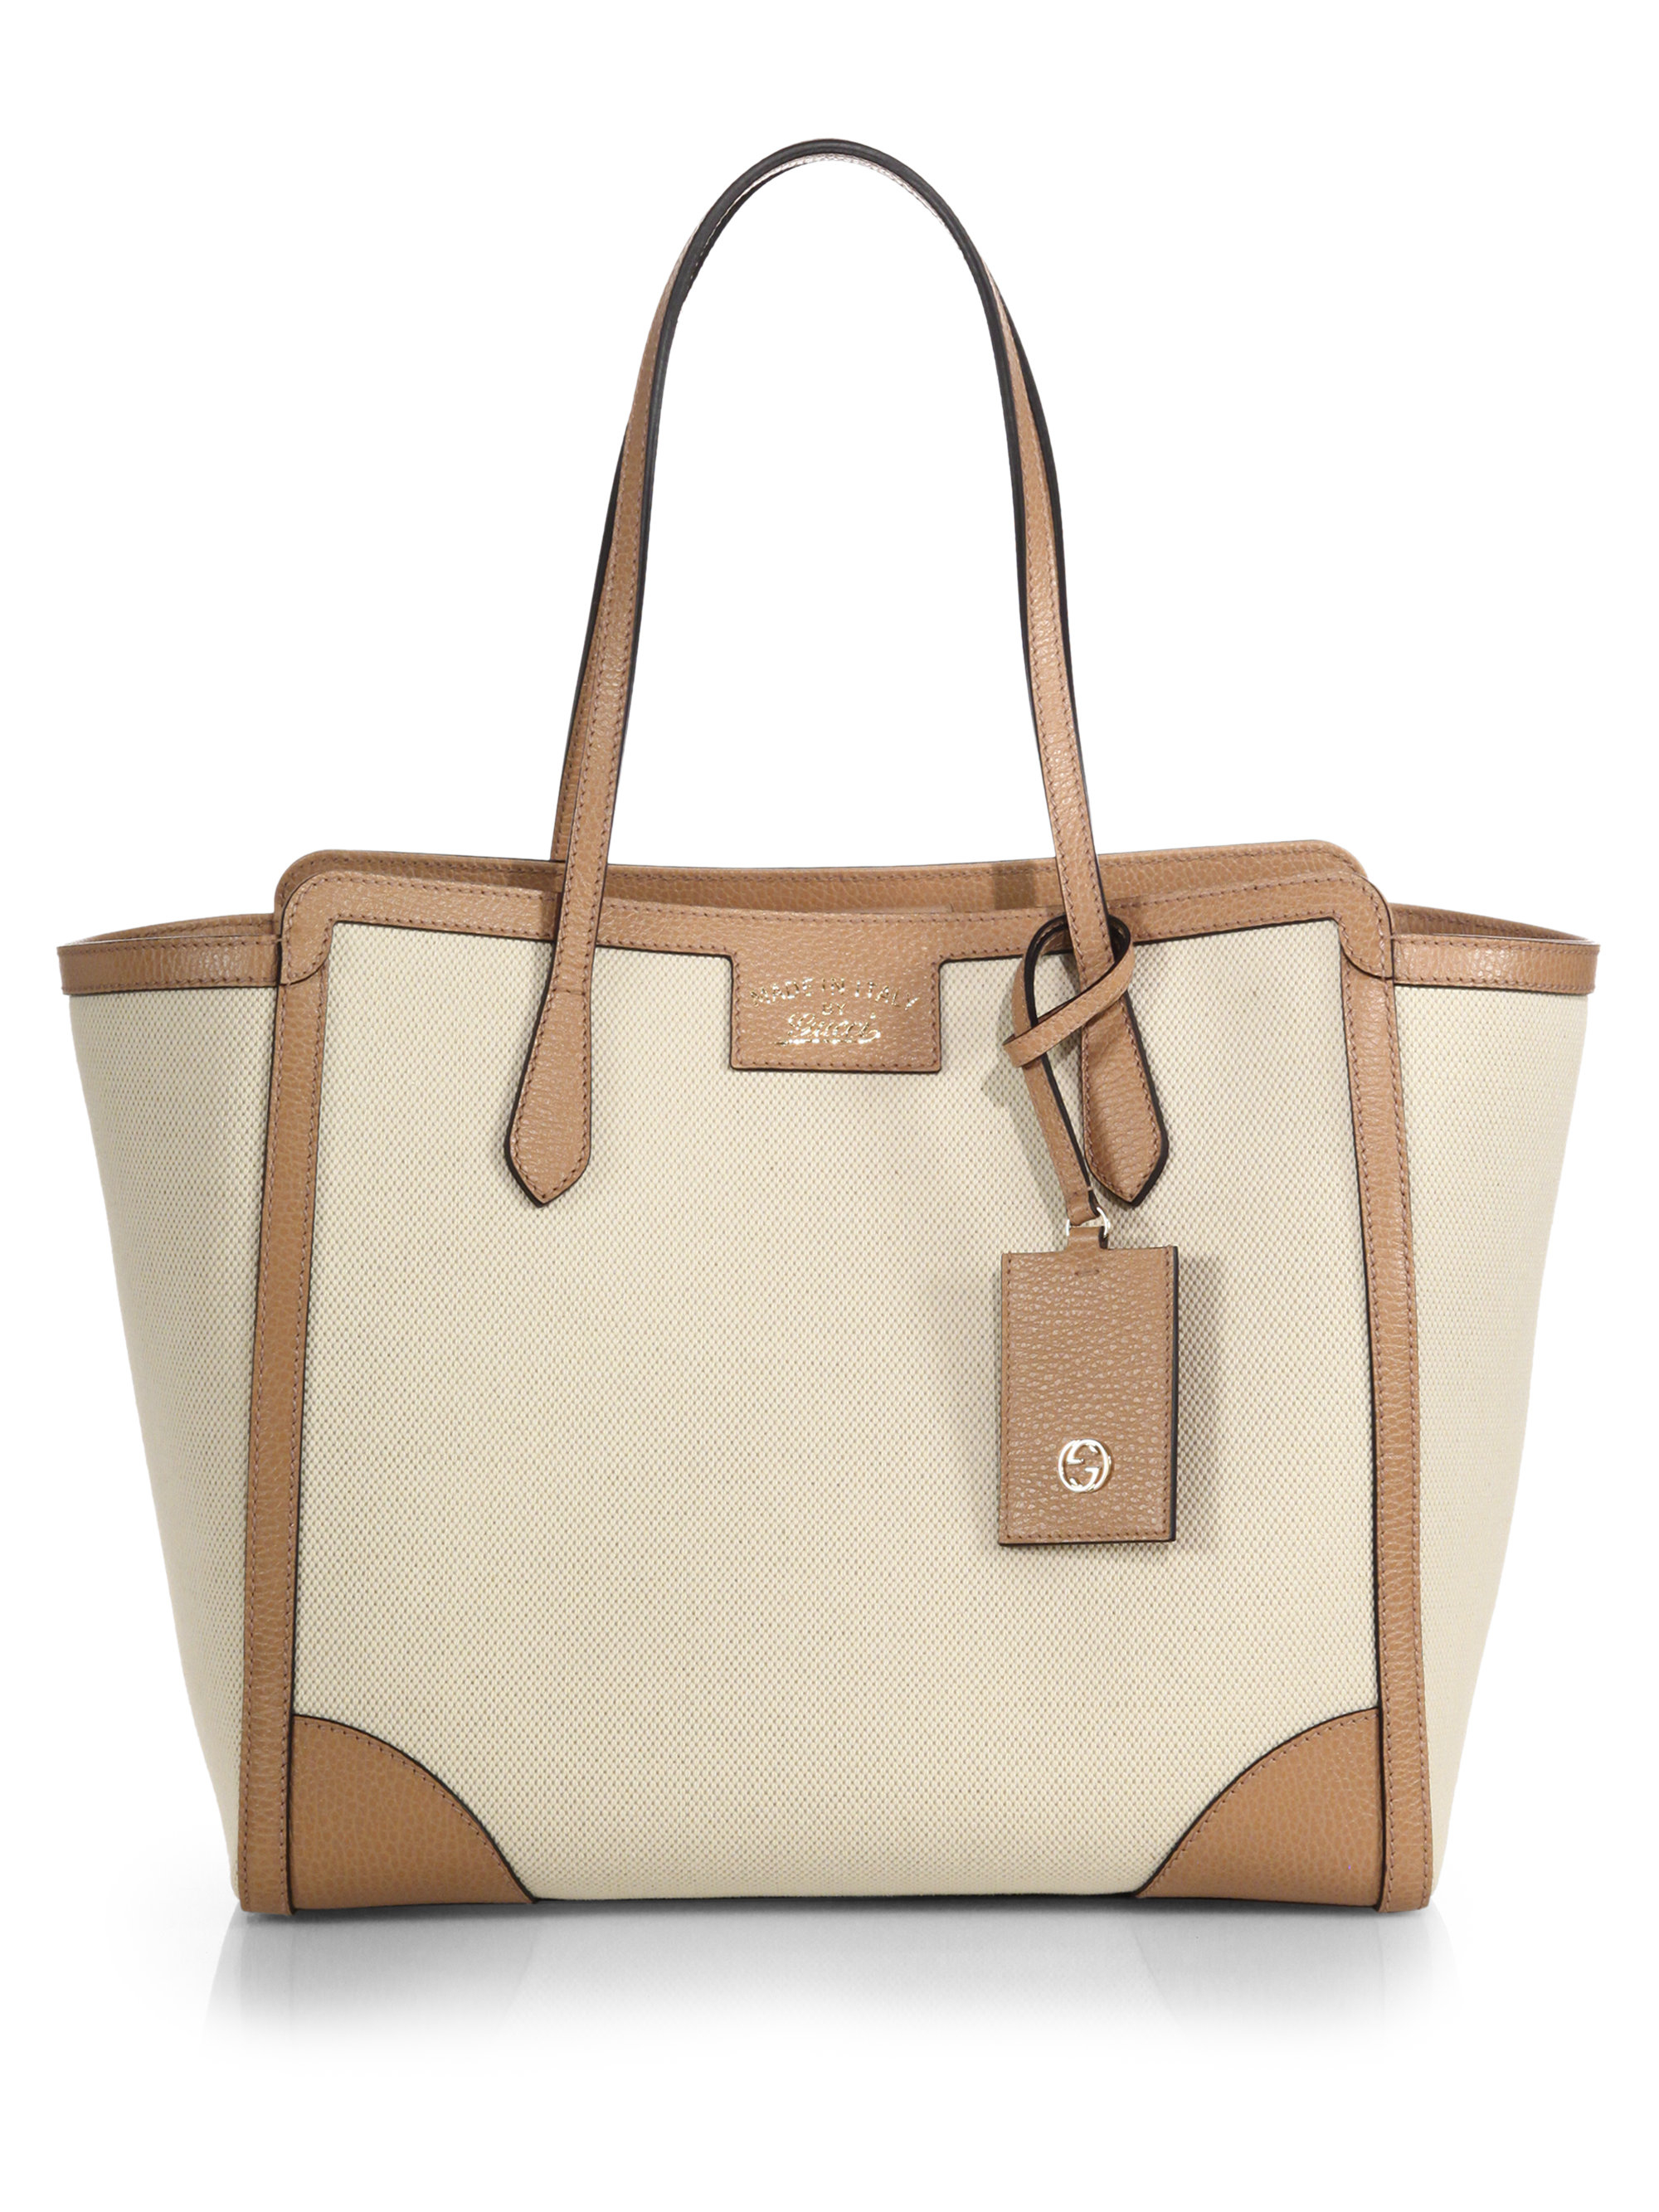 ea0a84b702db3d Gucci Swing Medium Canvas Tote in Natural - Lyst